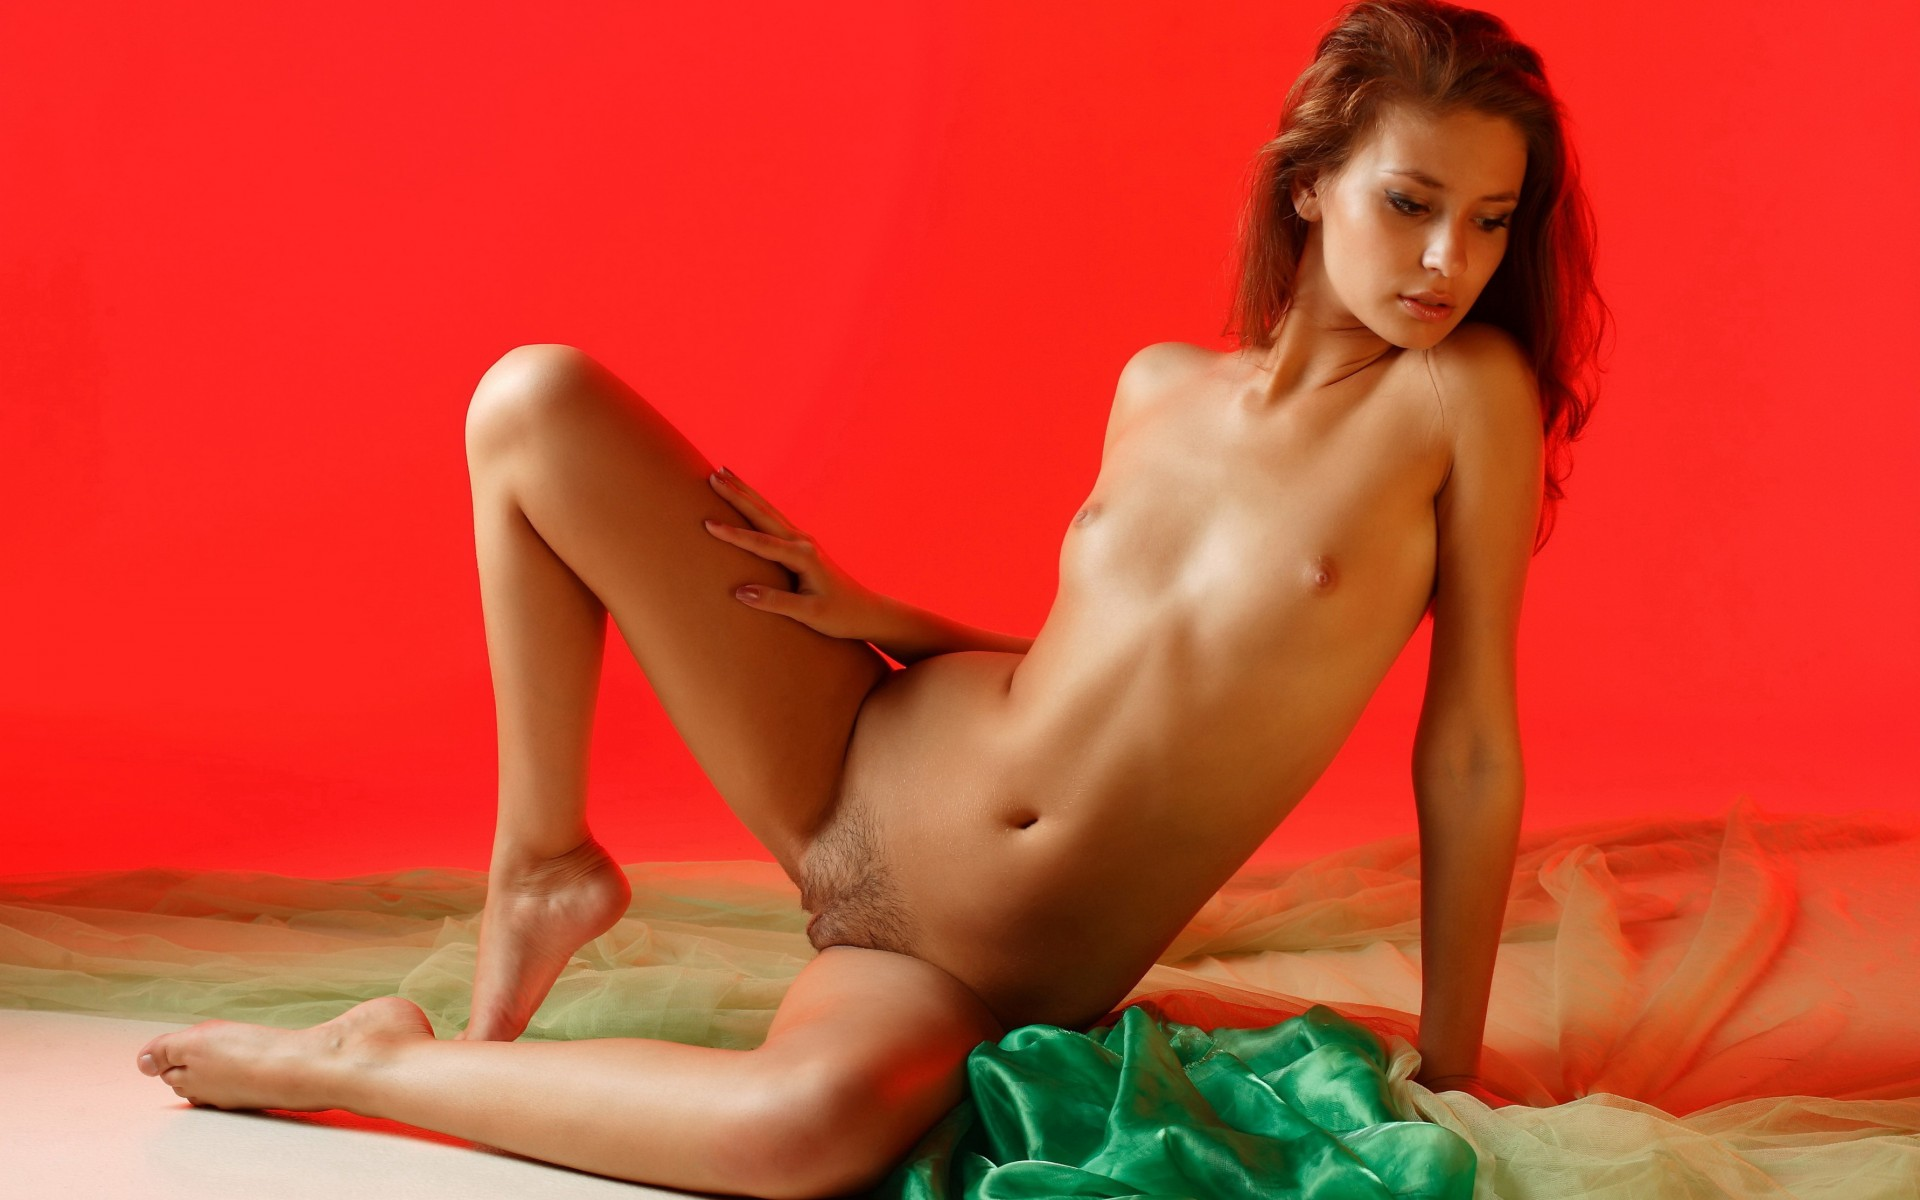 nude-model-young-fruit